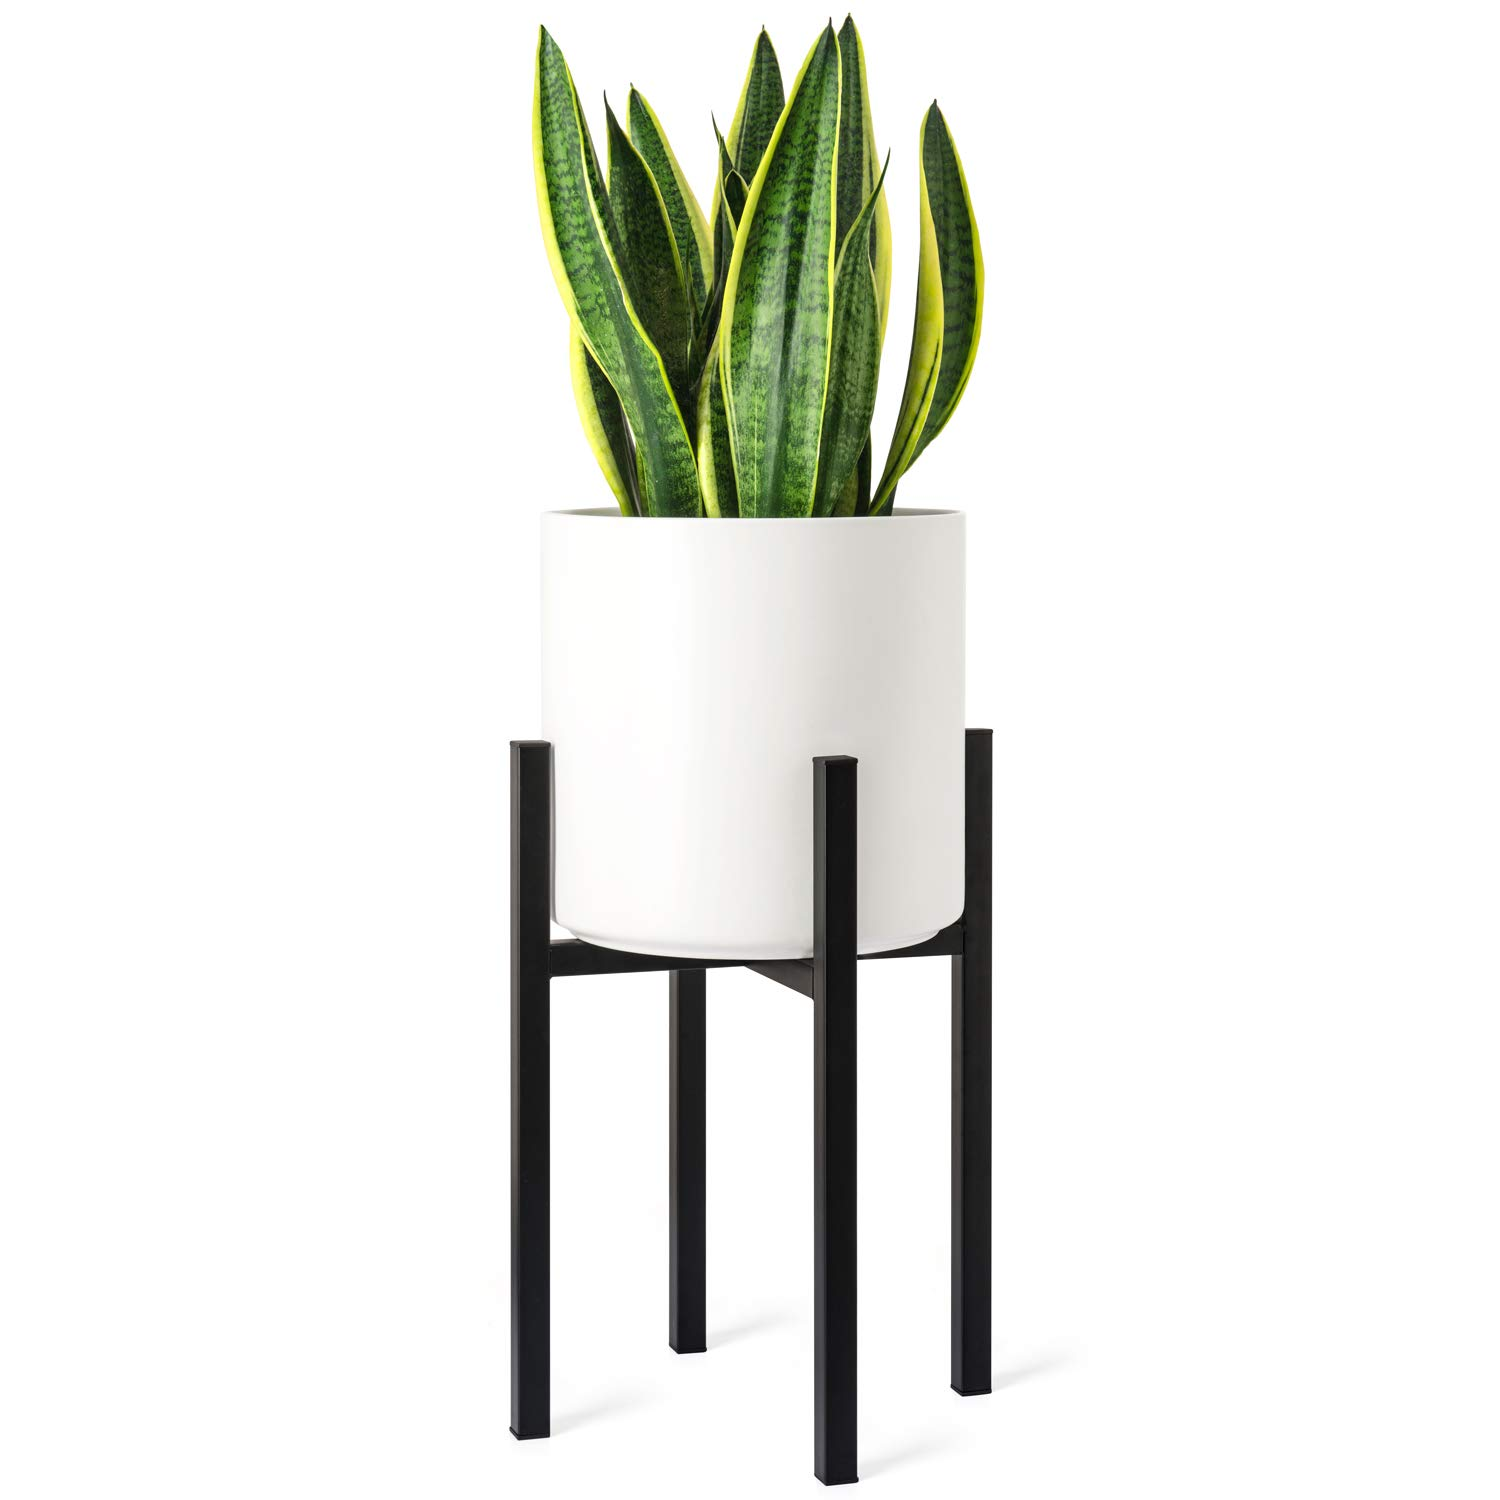 Mkono Plant Stand Mid Century Modern Tall Pot Stand Indoor (Plant Pot Not Included) Metal Flower Potted Plant Holder, Plants Display Rack Fits Up to 10 Inch Planter